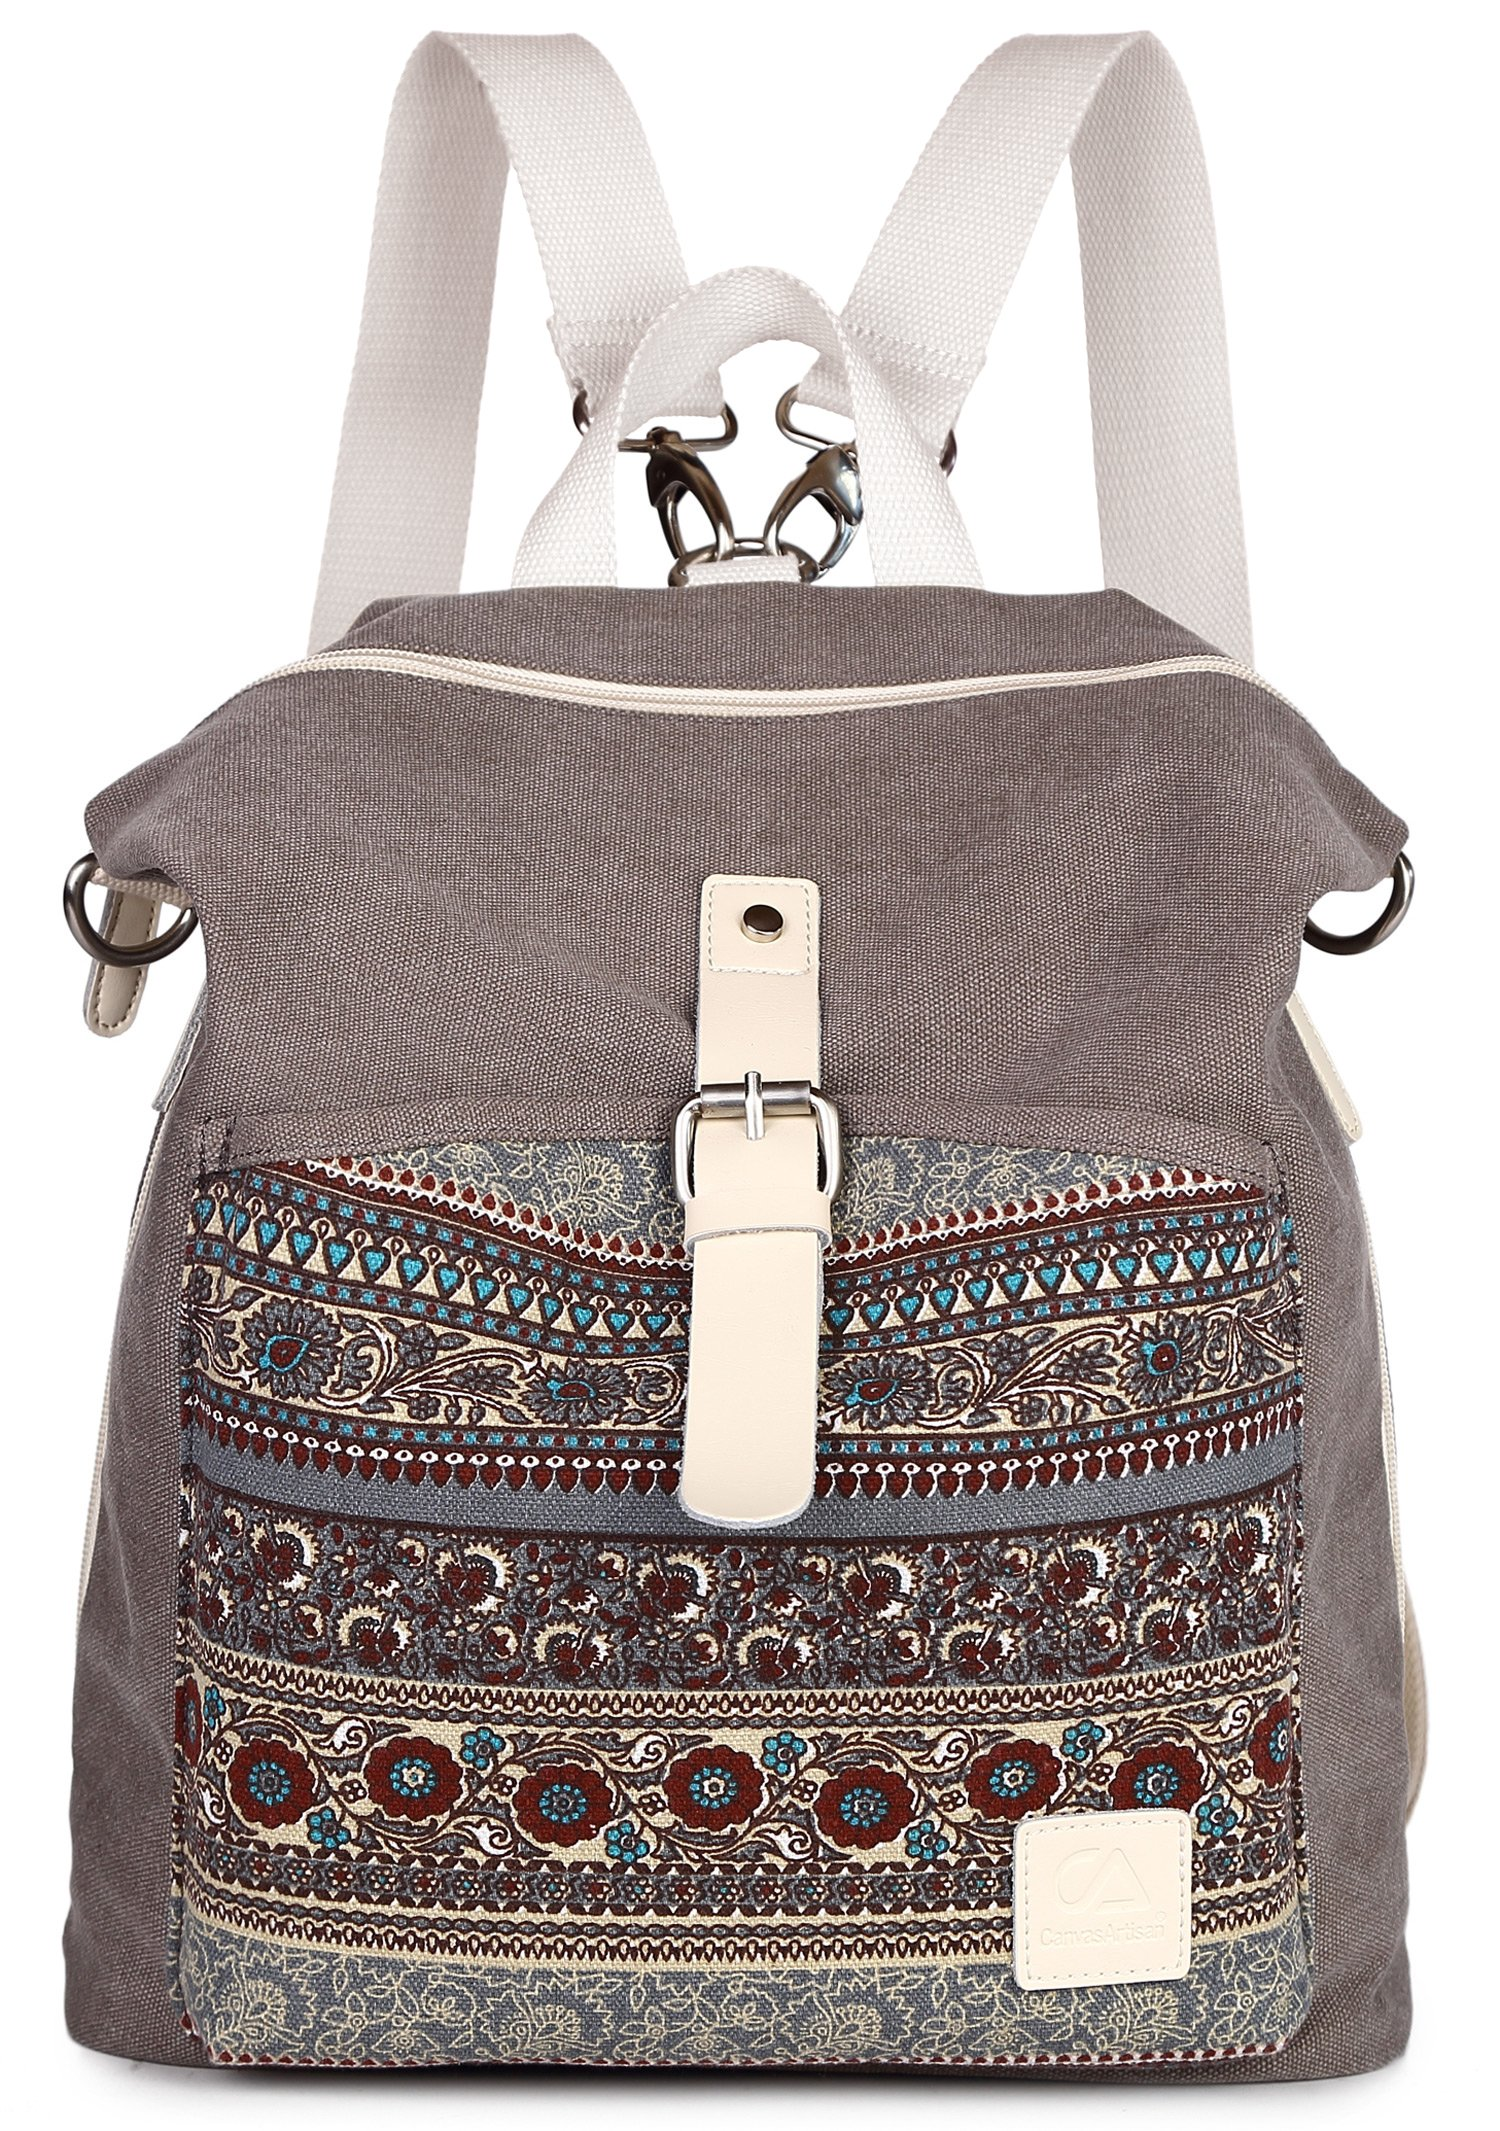 ArcEnCiel Women Girl Backpack Canvas Rucksack Shoulder Bag (Gray) by ArcEnCiel